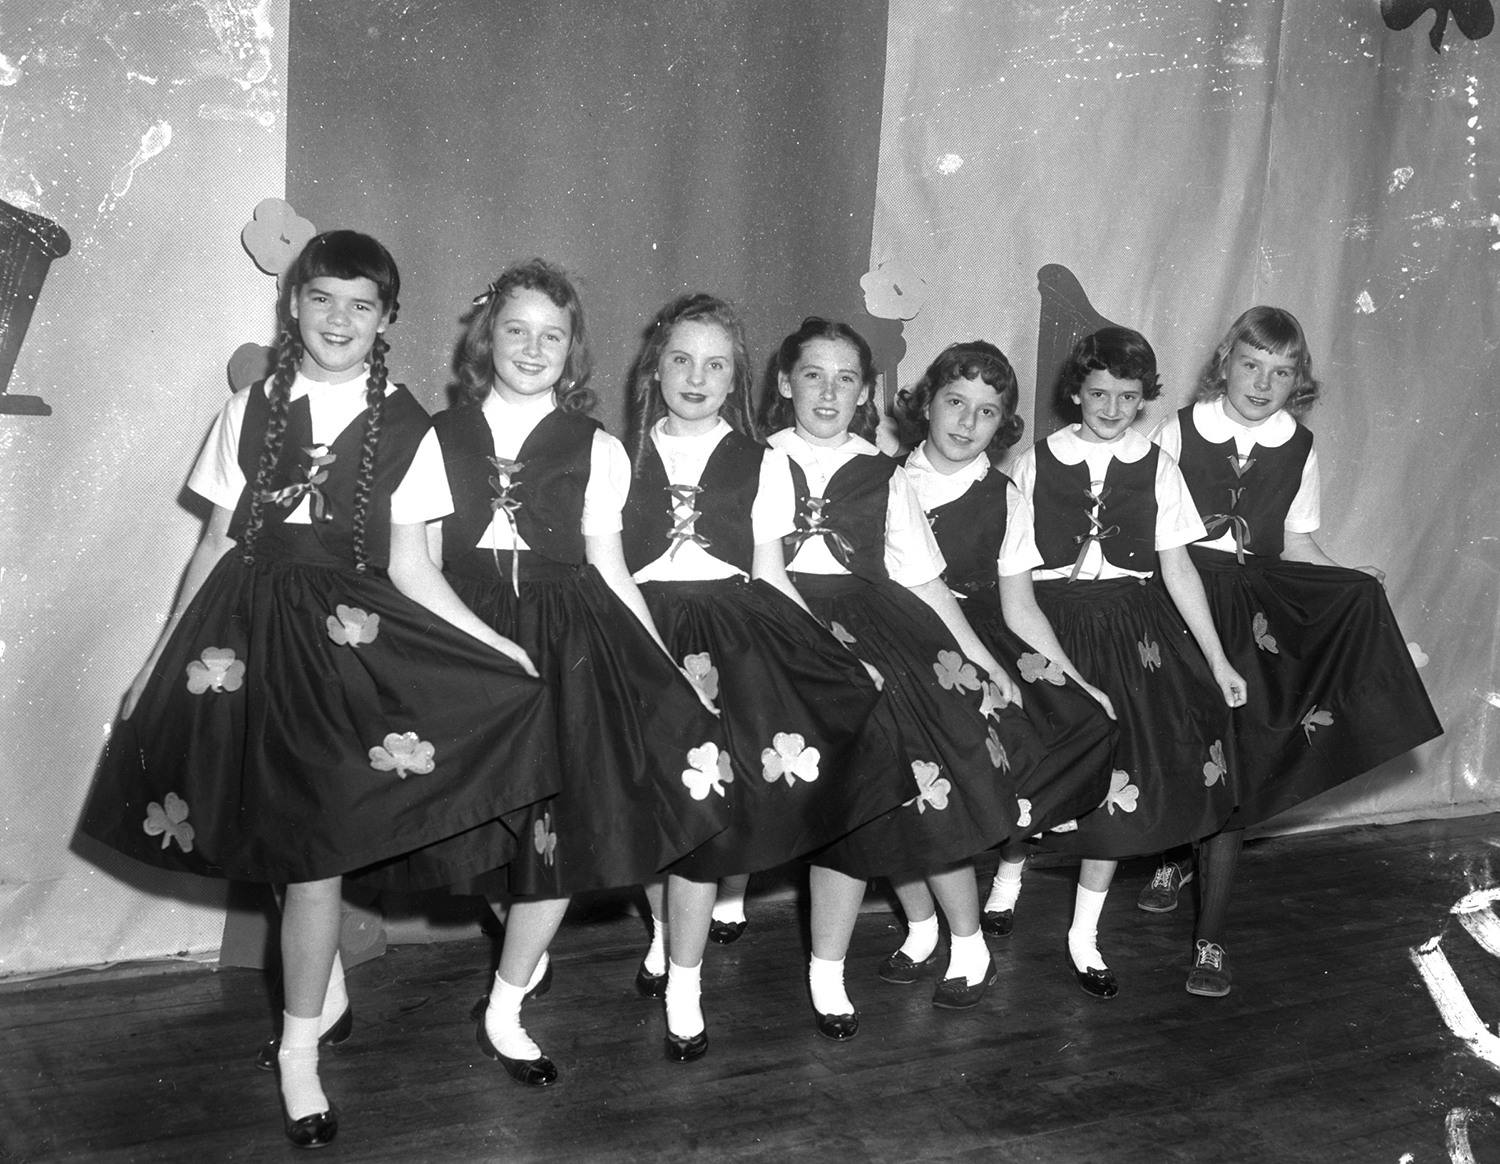 St Patrick's Day dancers, 1960. From the Portland Public Library archival collection of Portland Press Herald, Maine Sunday Telegram and Evening Express photos.